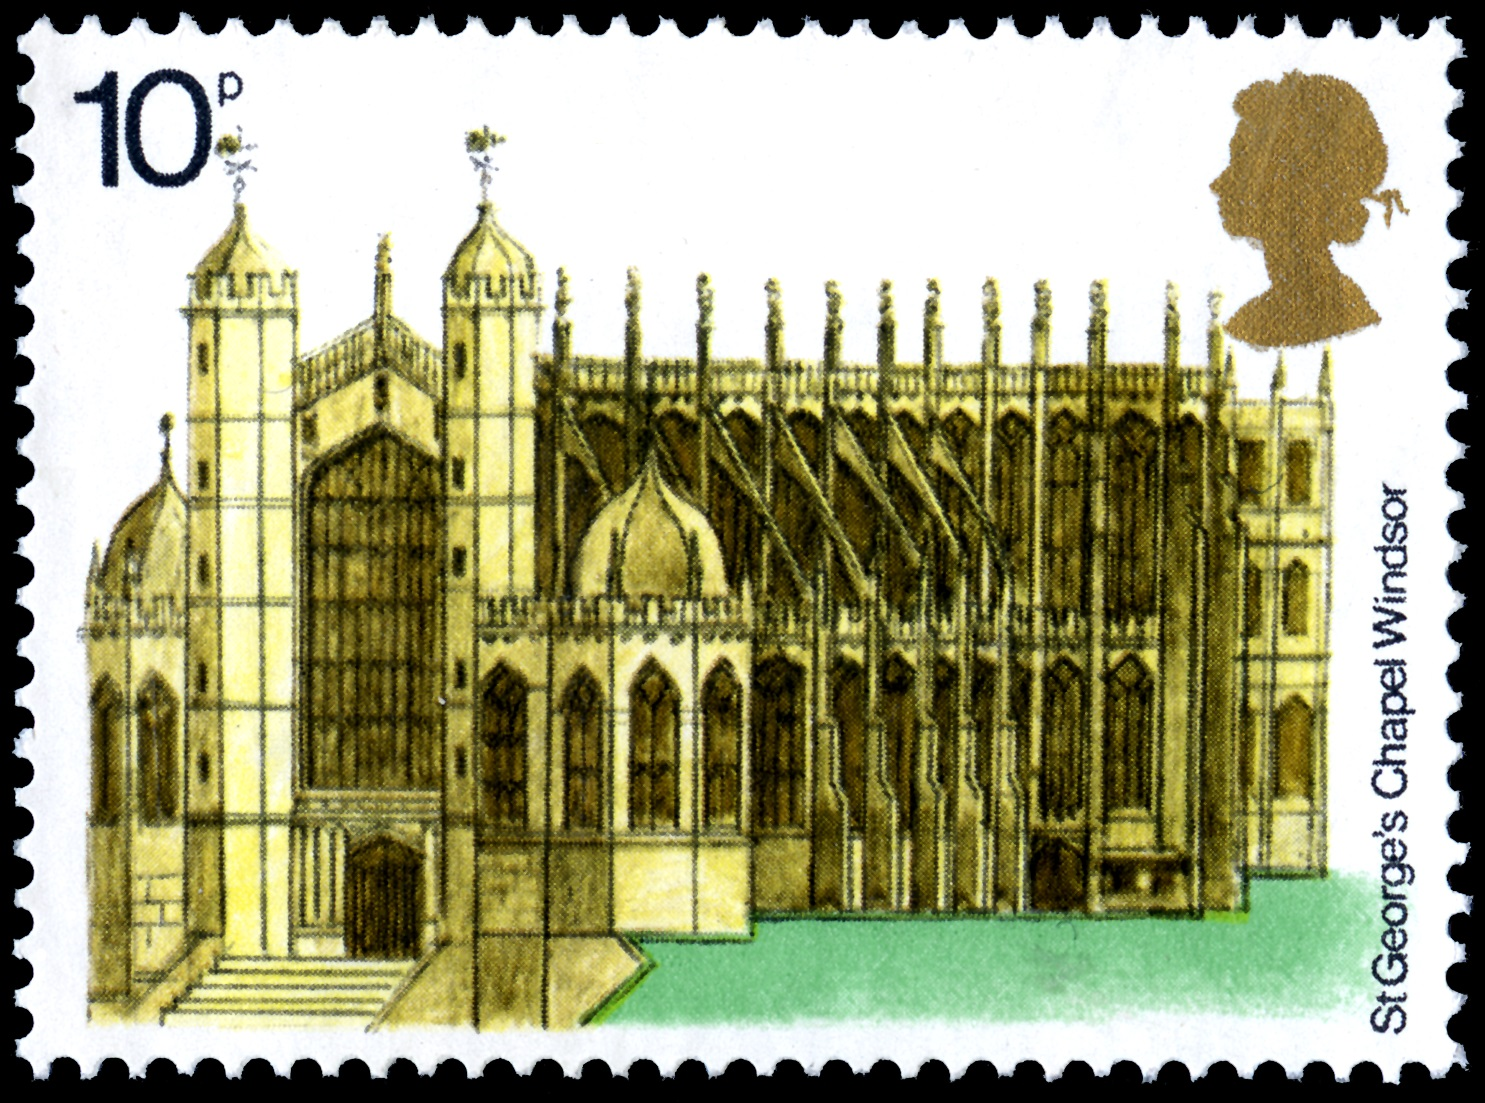 10 pence stamp depicting a drawing of St George's Chapel at Windsor Castle.